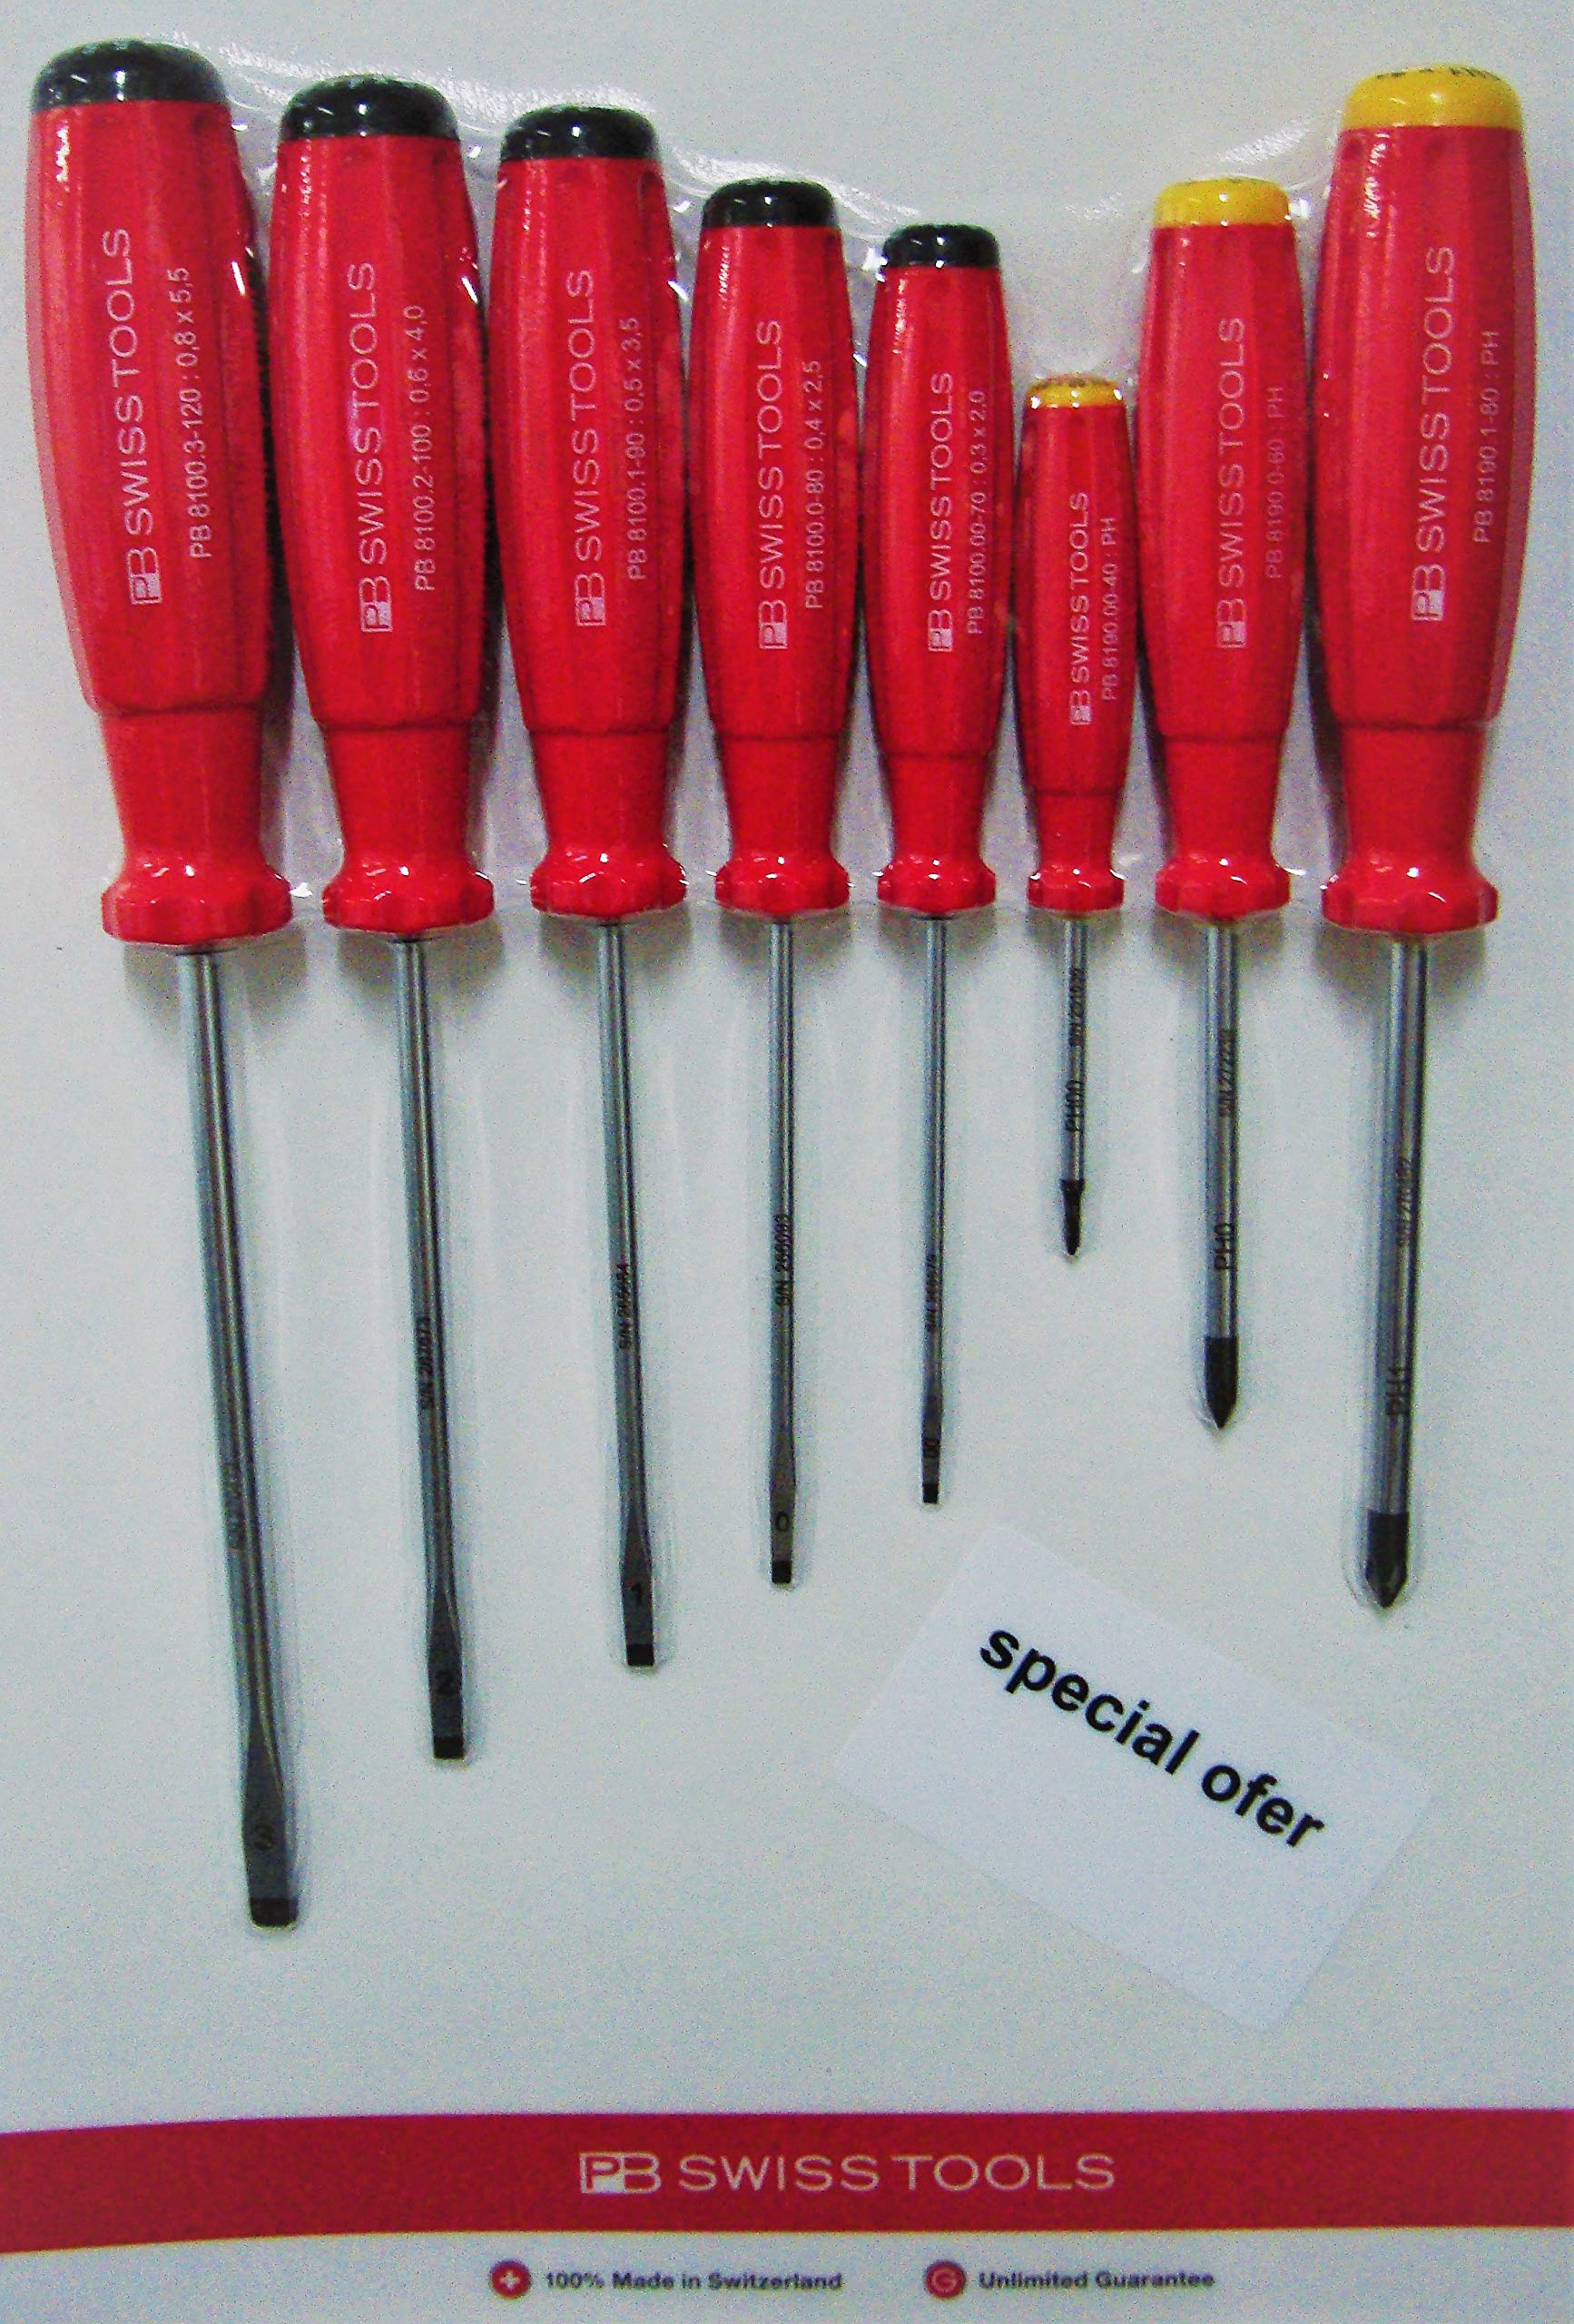 8 pcs Set Car Professional 5 Slotted Screwdrivers + 3 Phillips Screwdrivers